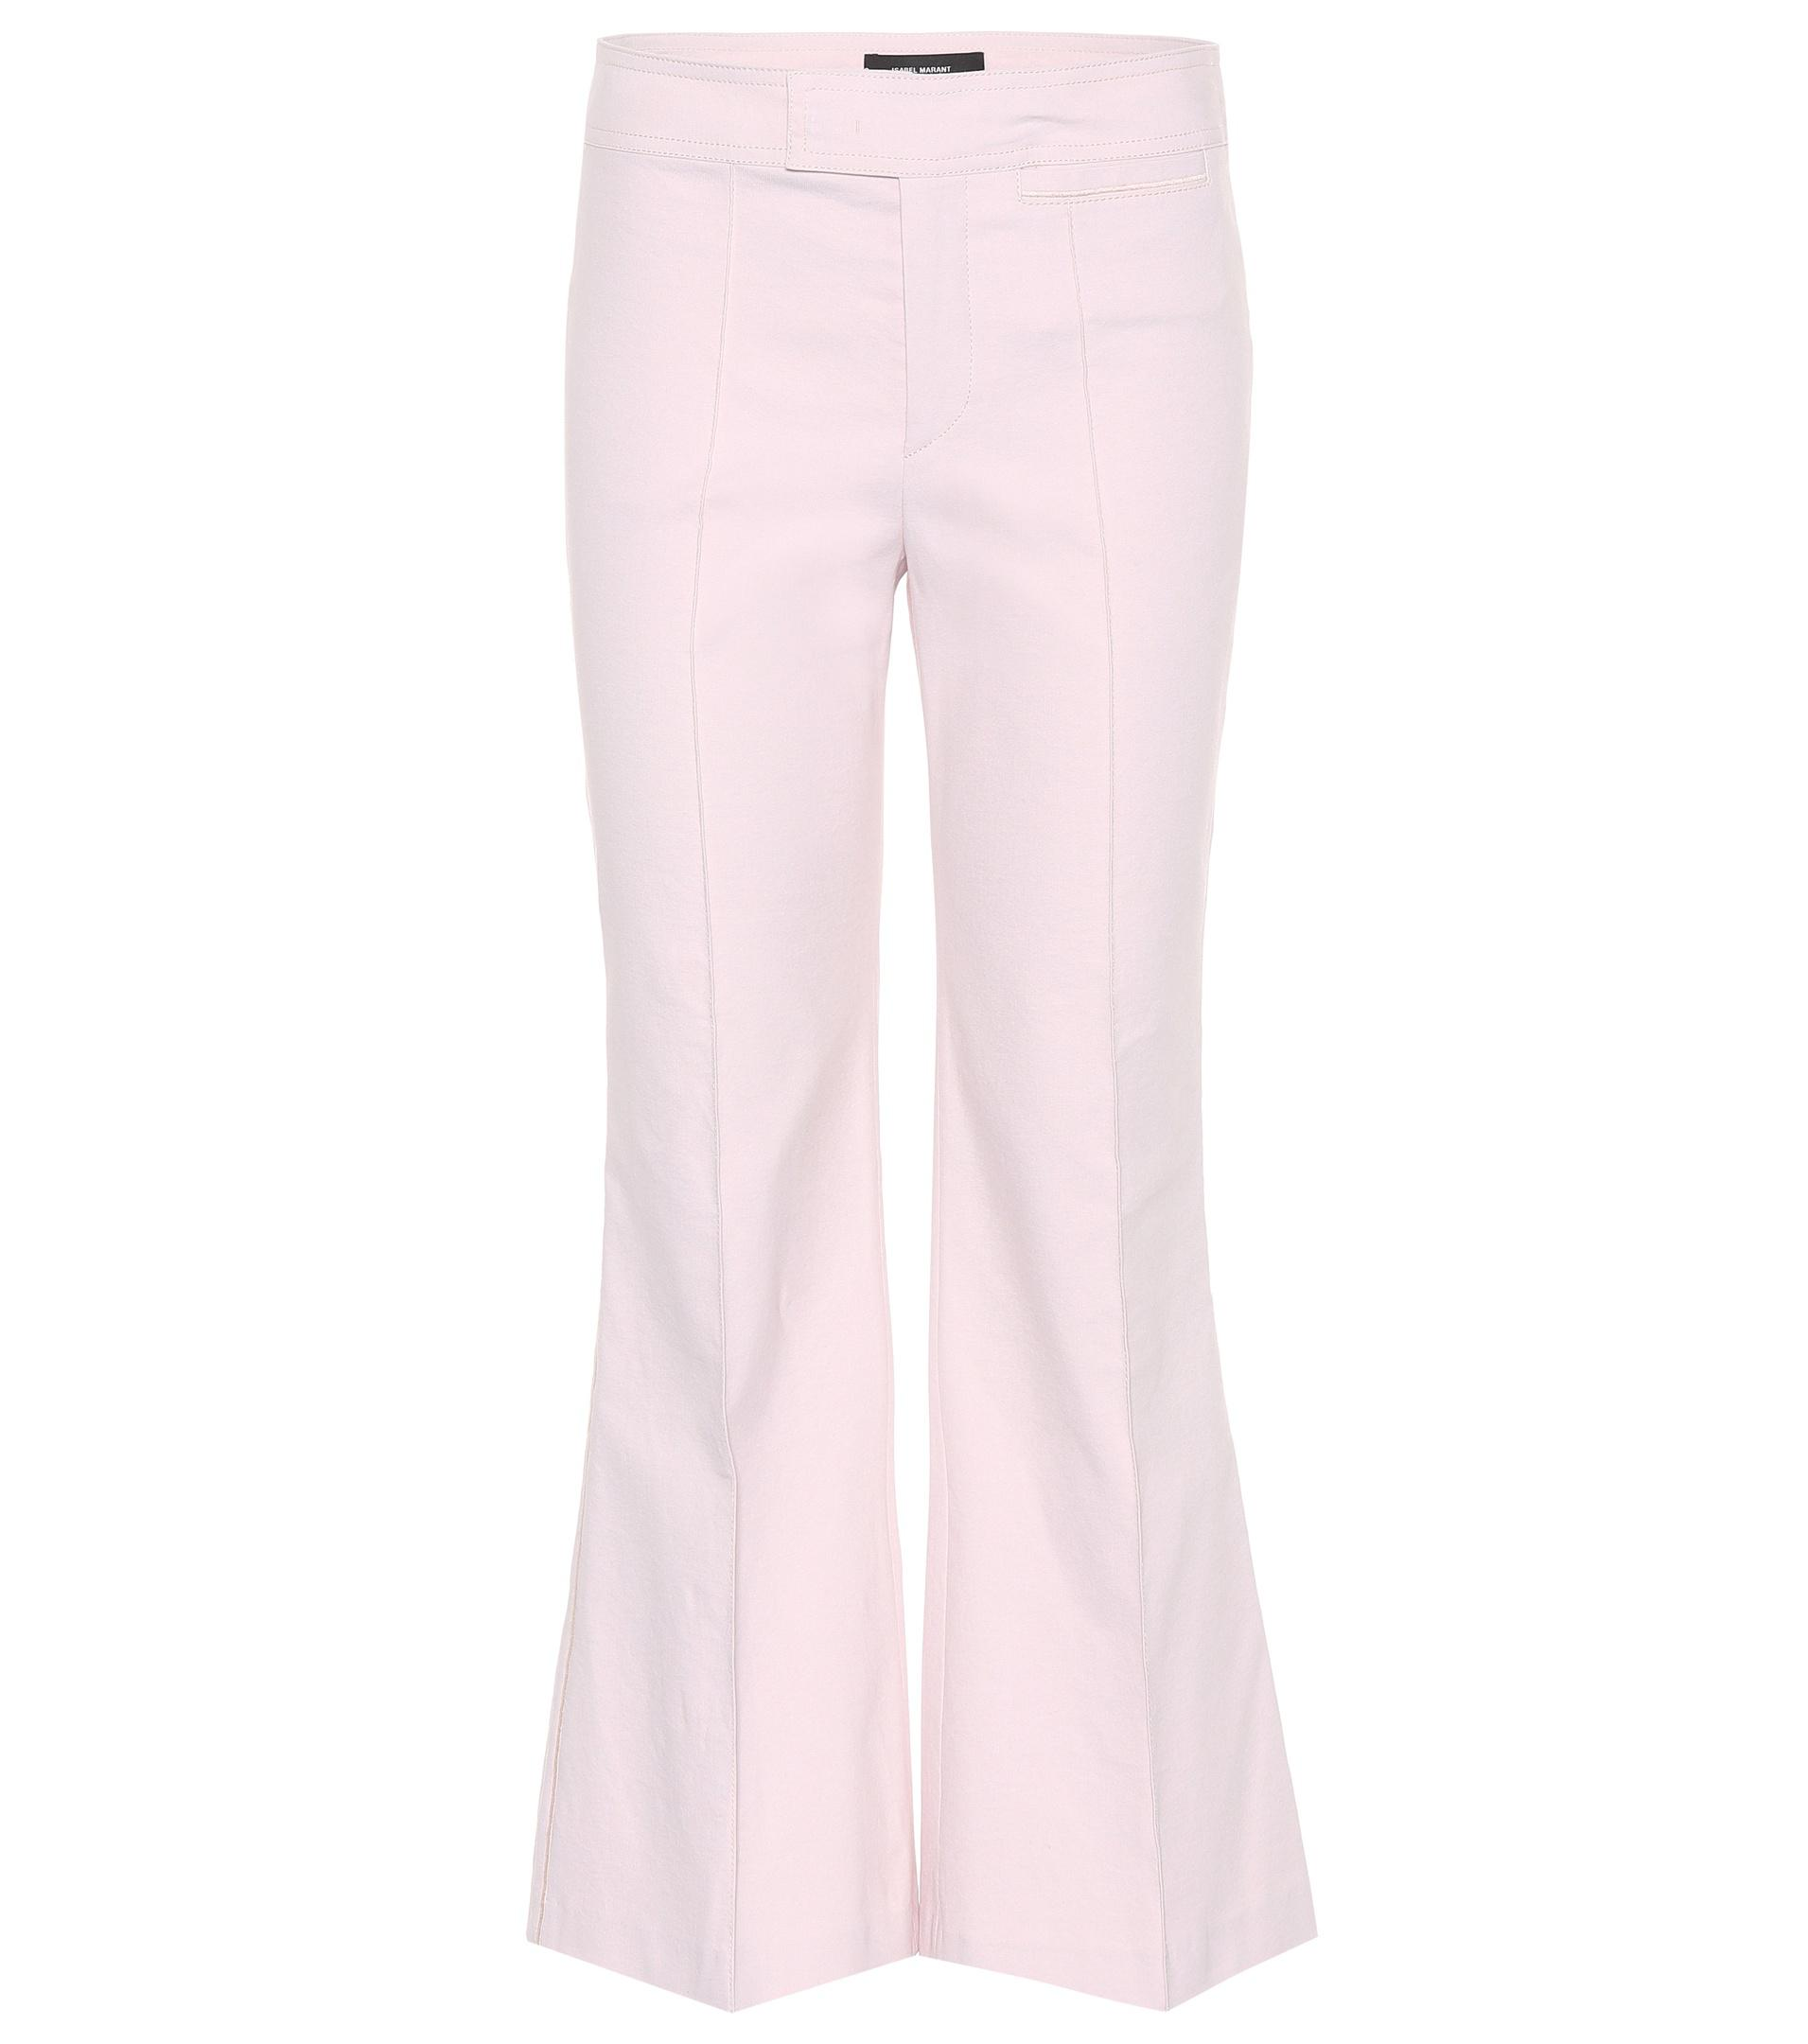 Clearance Low Shipping Best Prices Lyre trousers - Pink & Purple Isabel Marant For Cheap Sale Online Lz9QYfKs